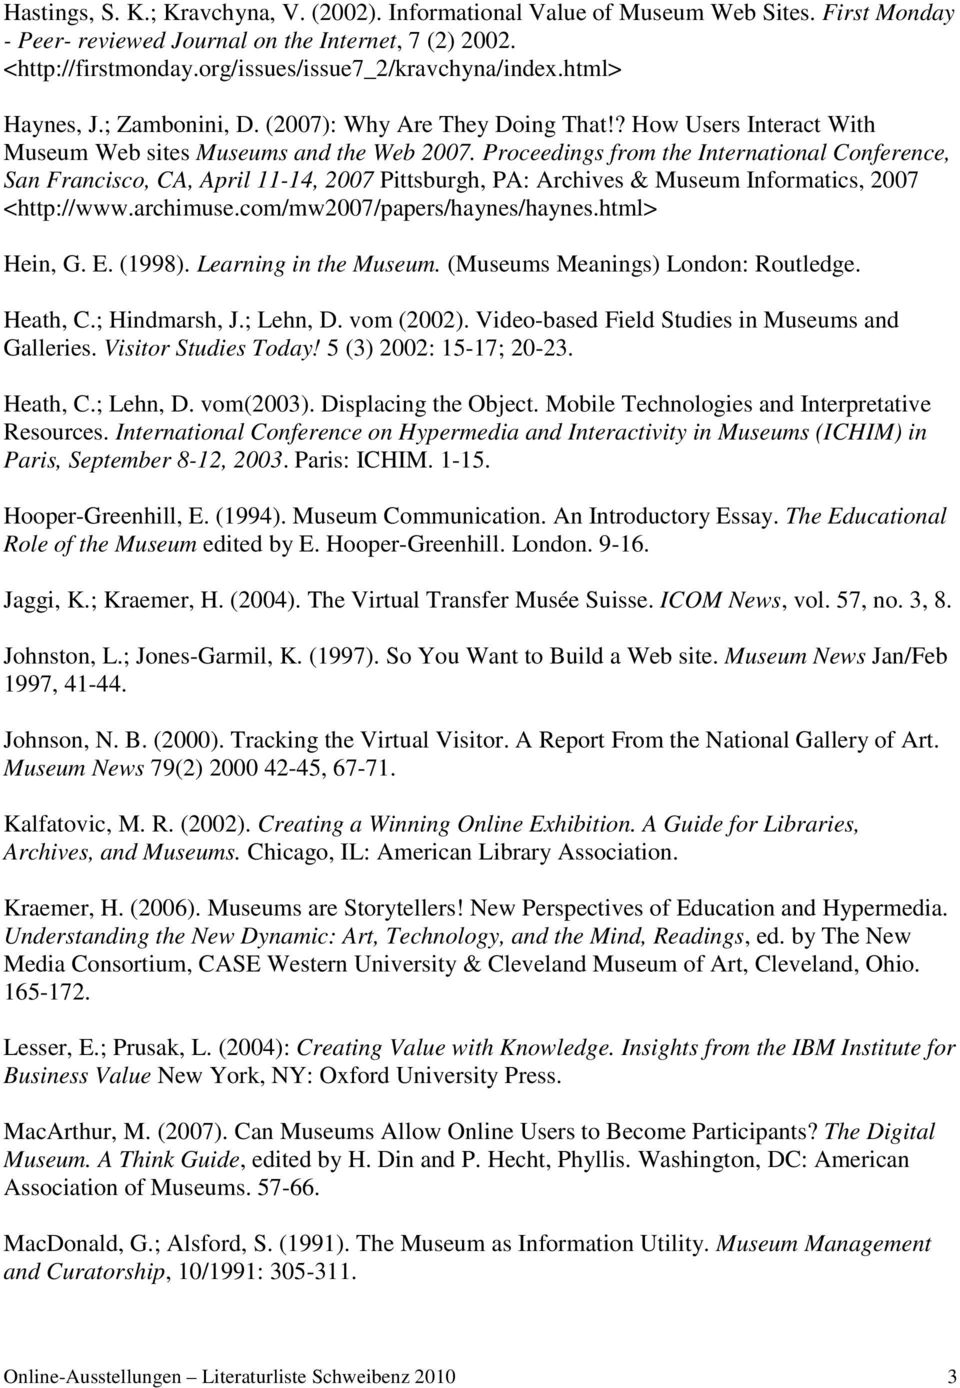 Proceedings from the International Conference, San Francisco, CA, April 11-14, 2007 Pittsburgh, PA: Archives & Museum Informatics, 2007 <http://www.archimuse.com/mw2007/papers/haynes/haynes.